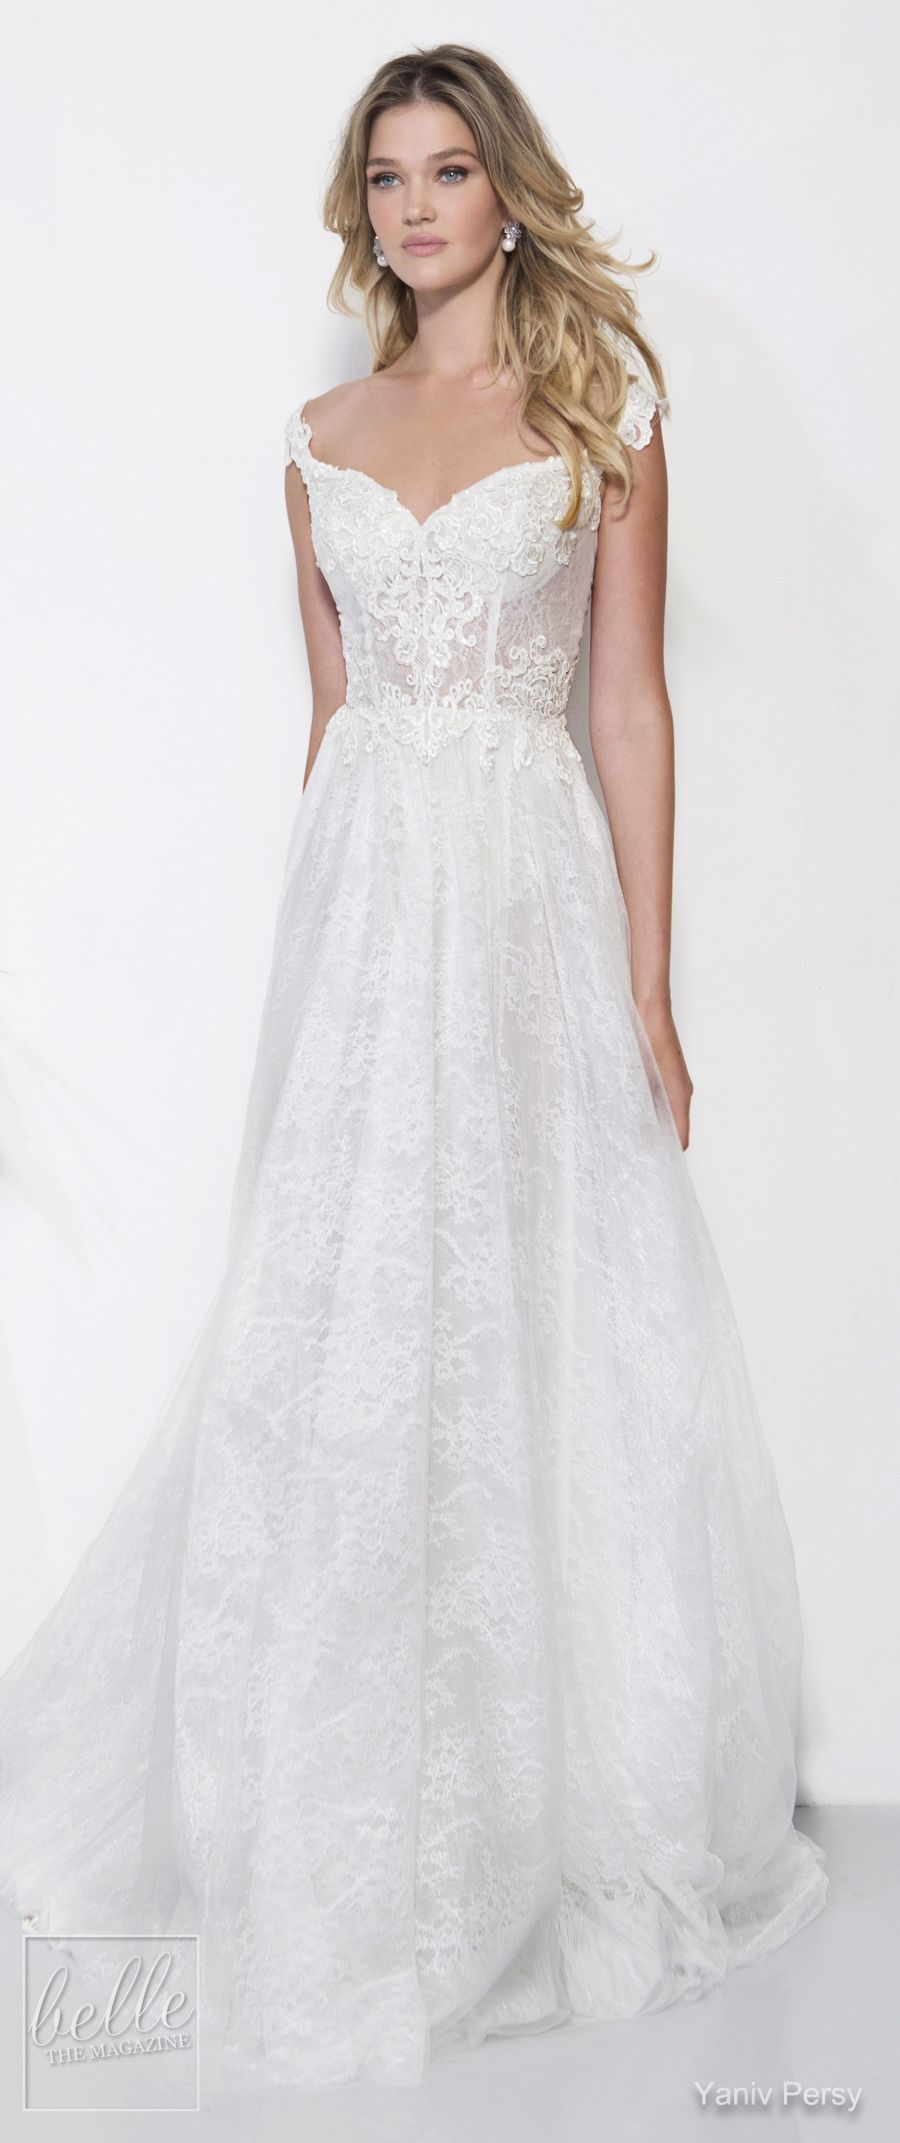 Lace dress in black august 2019 Yaniv Persy Wedding Dresses Spring  Bridal Collection